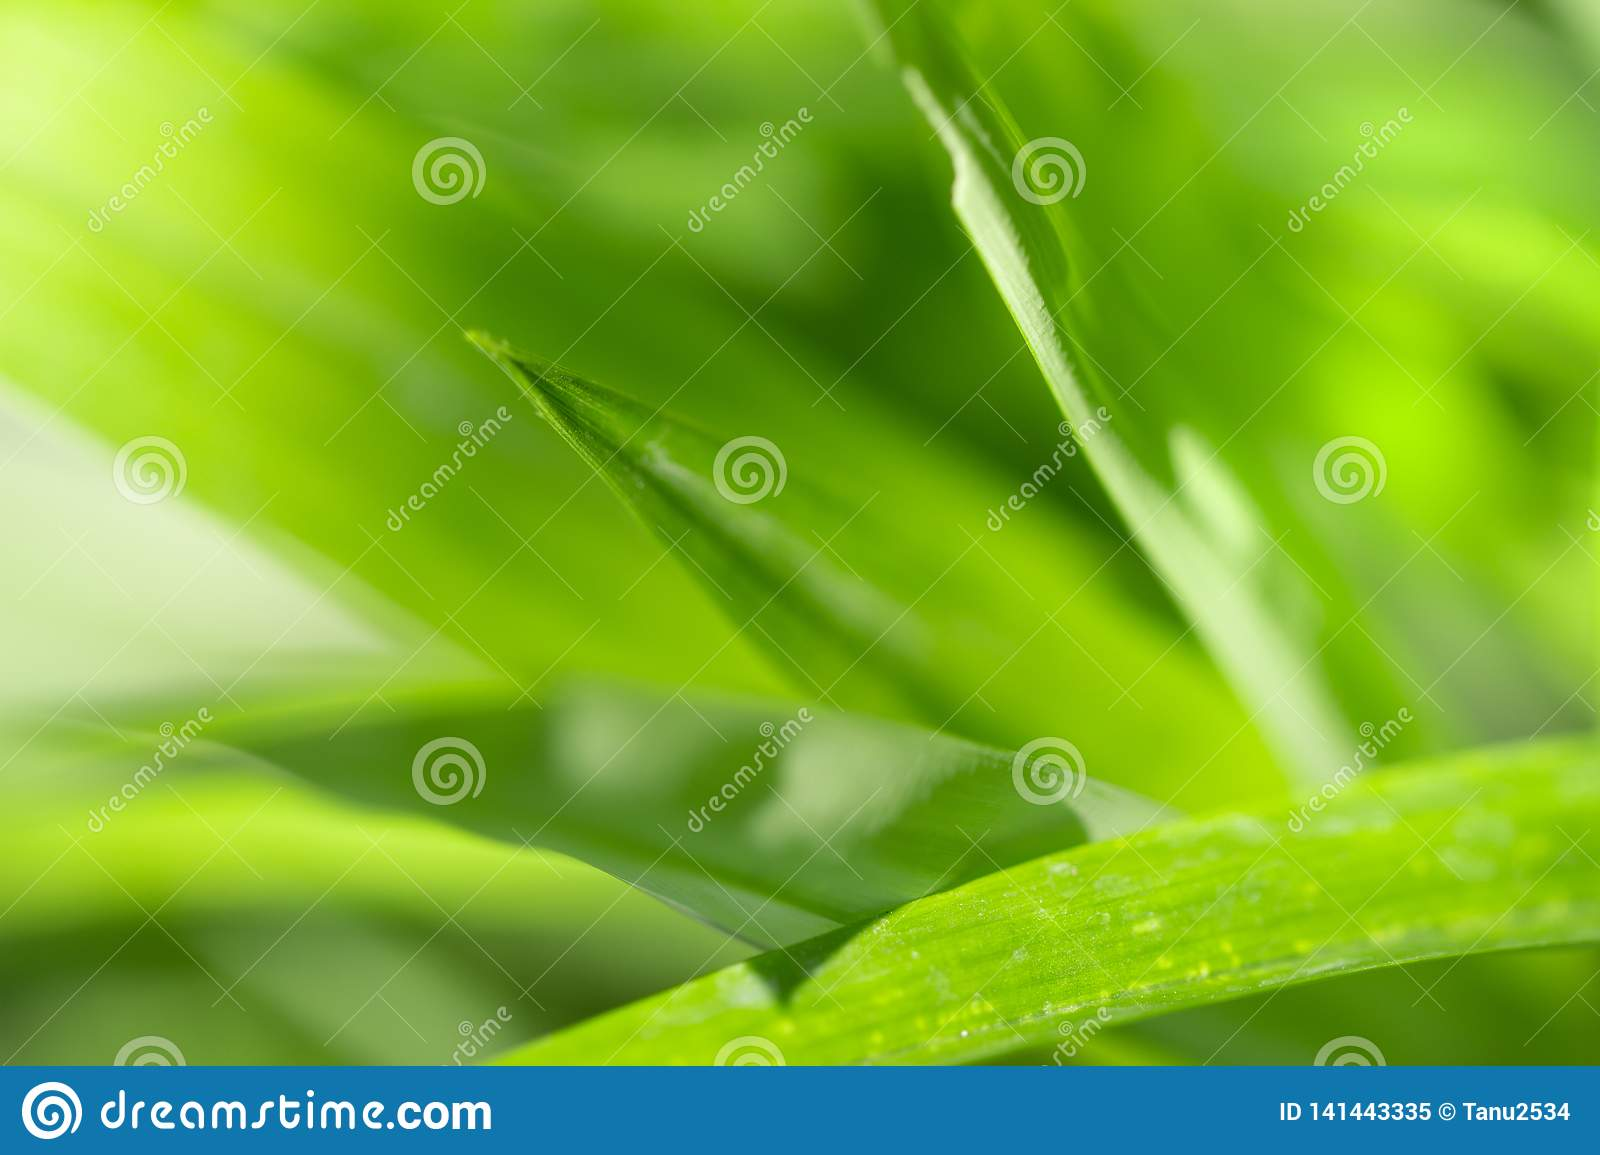 Close Up nature view of green leaf and green natural background